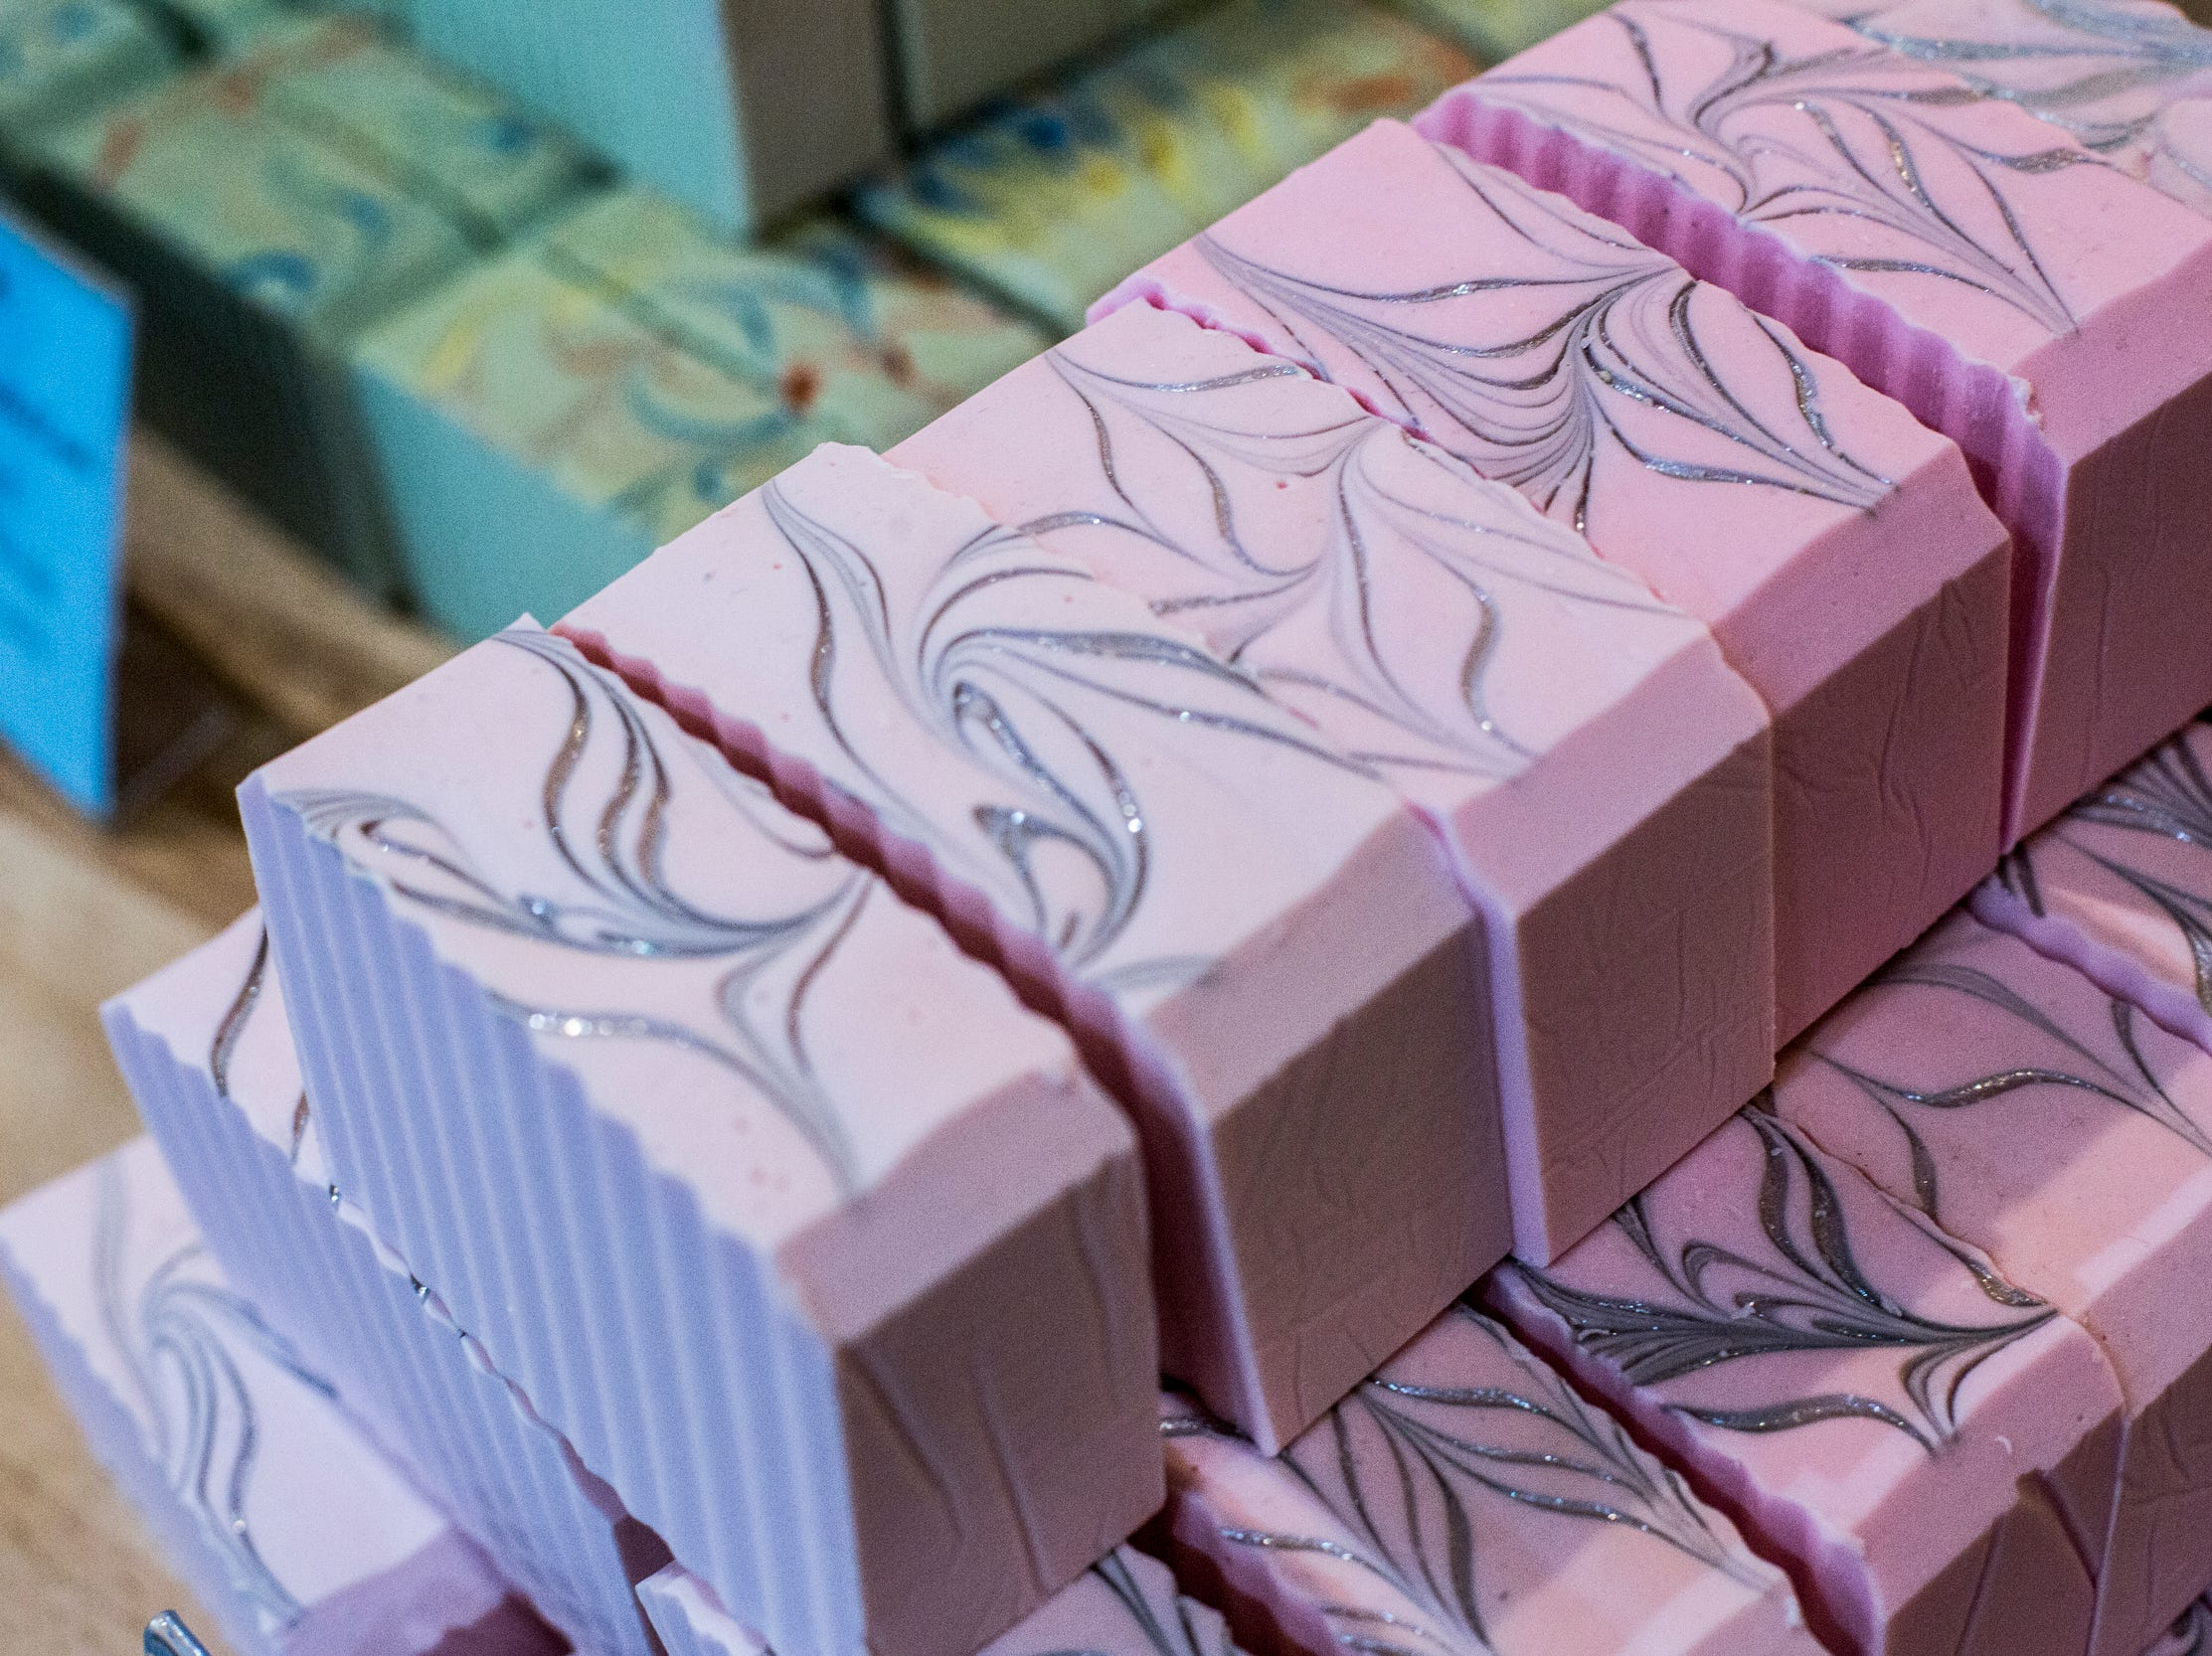 Pink Caddy, a kaolin clay shave soap, is just one of the soaps available at Buff City Soap.